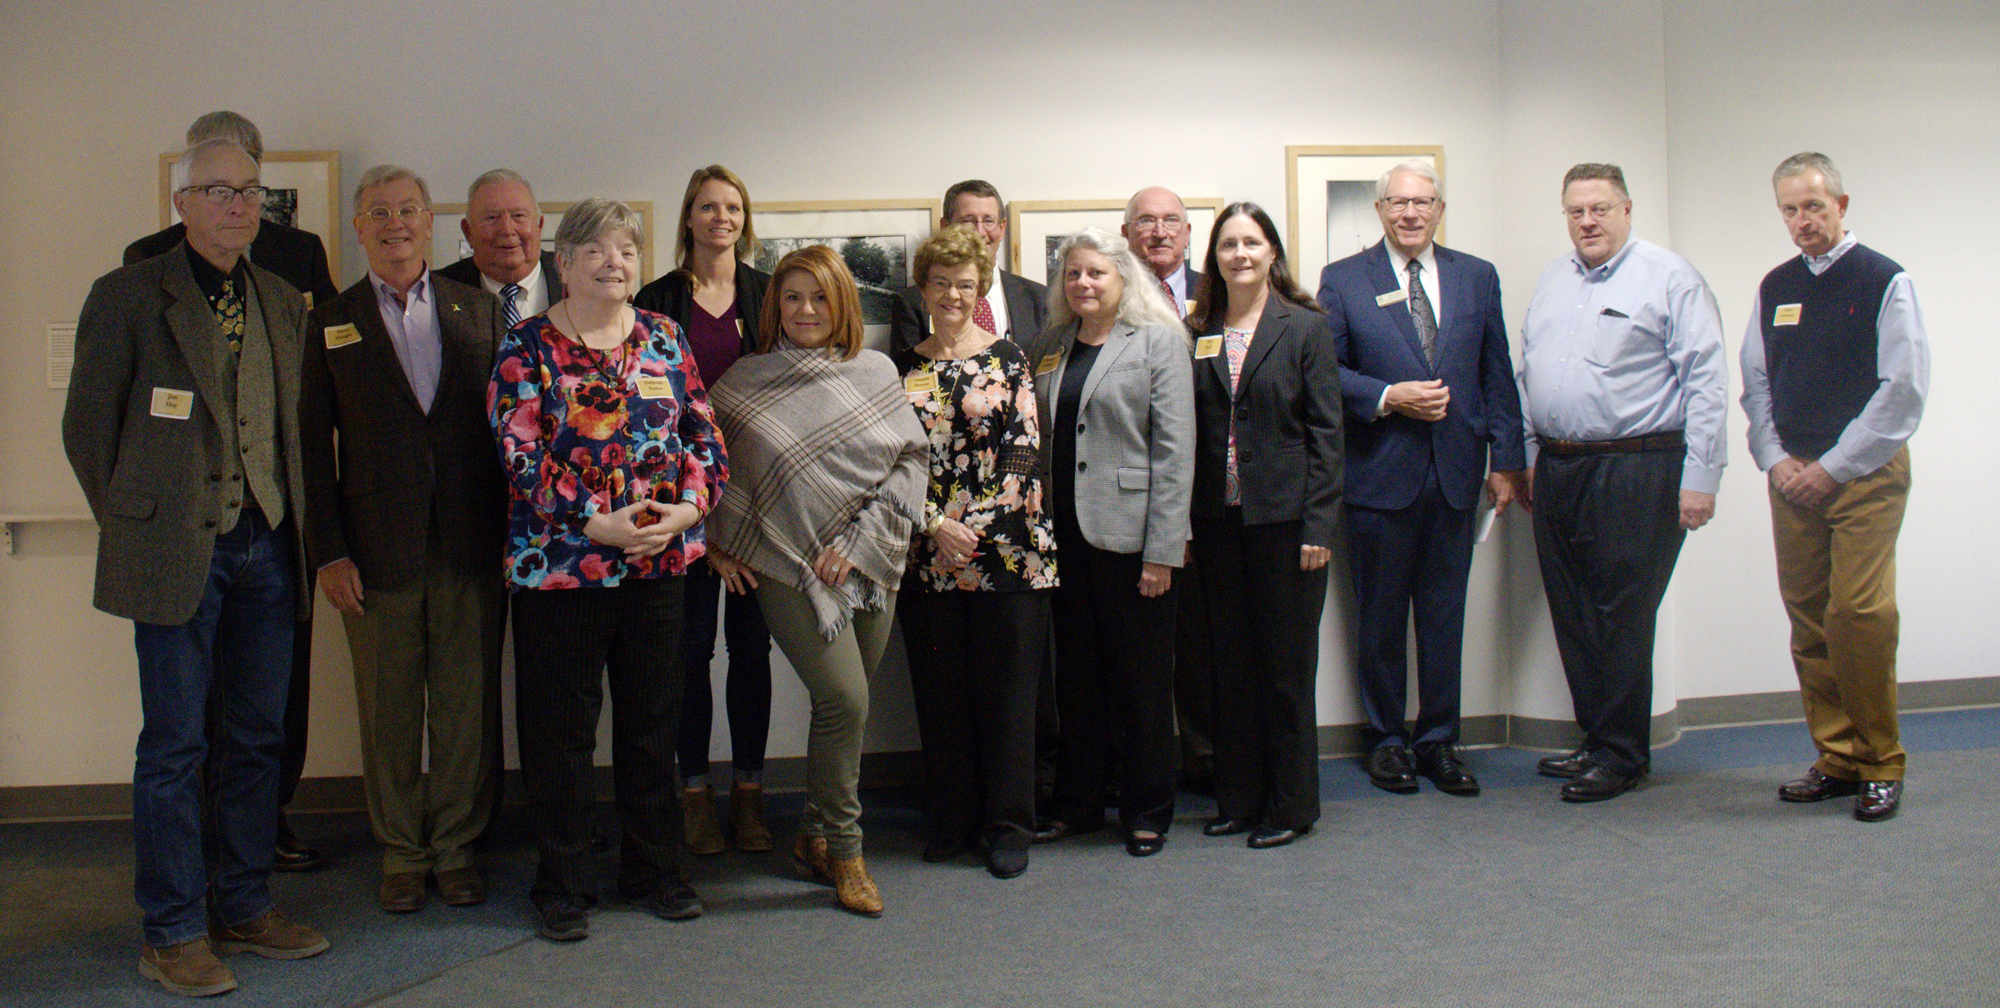 Kansas Historical Foundation board class of 2022